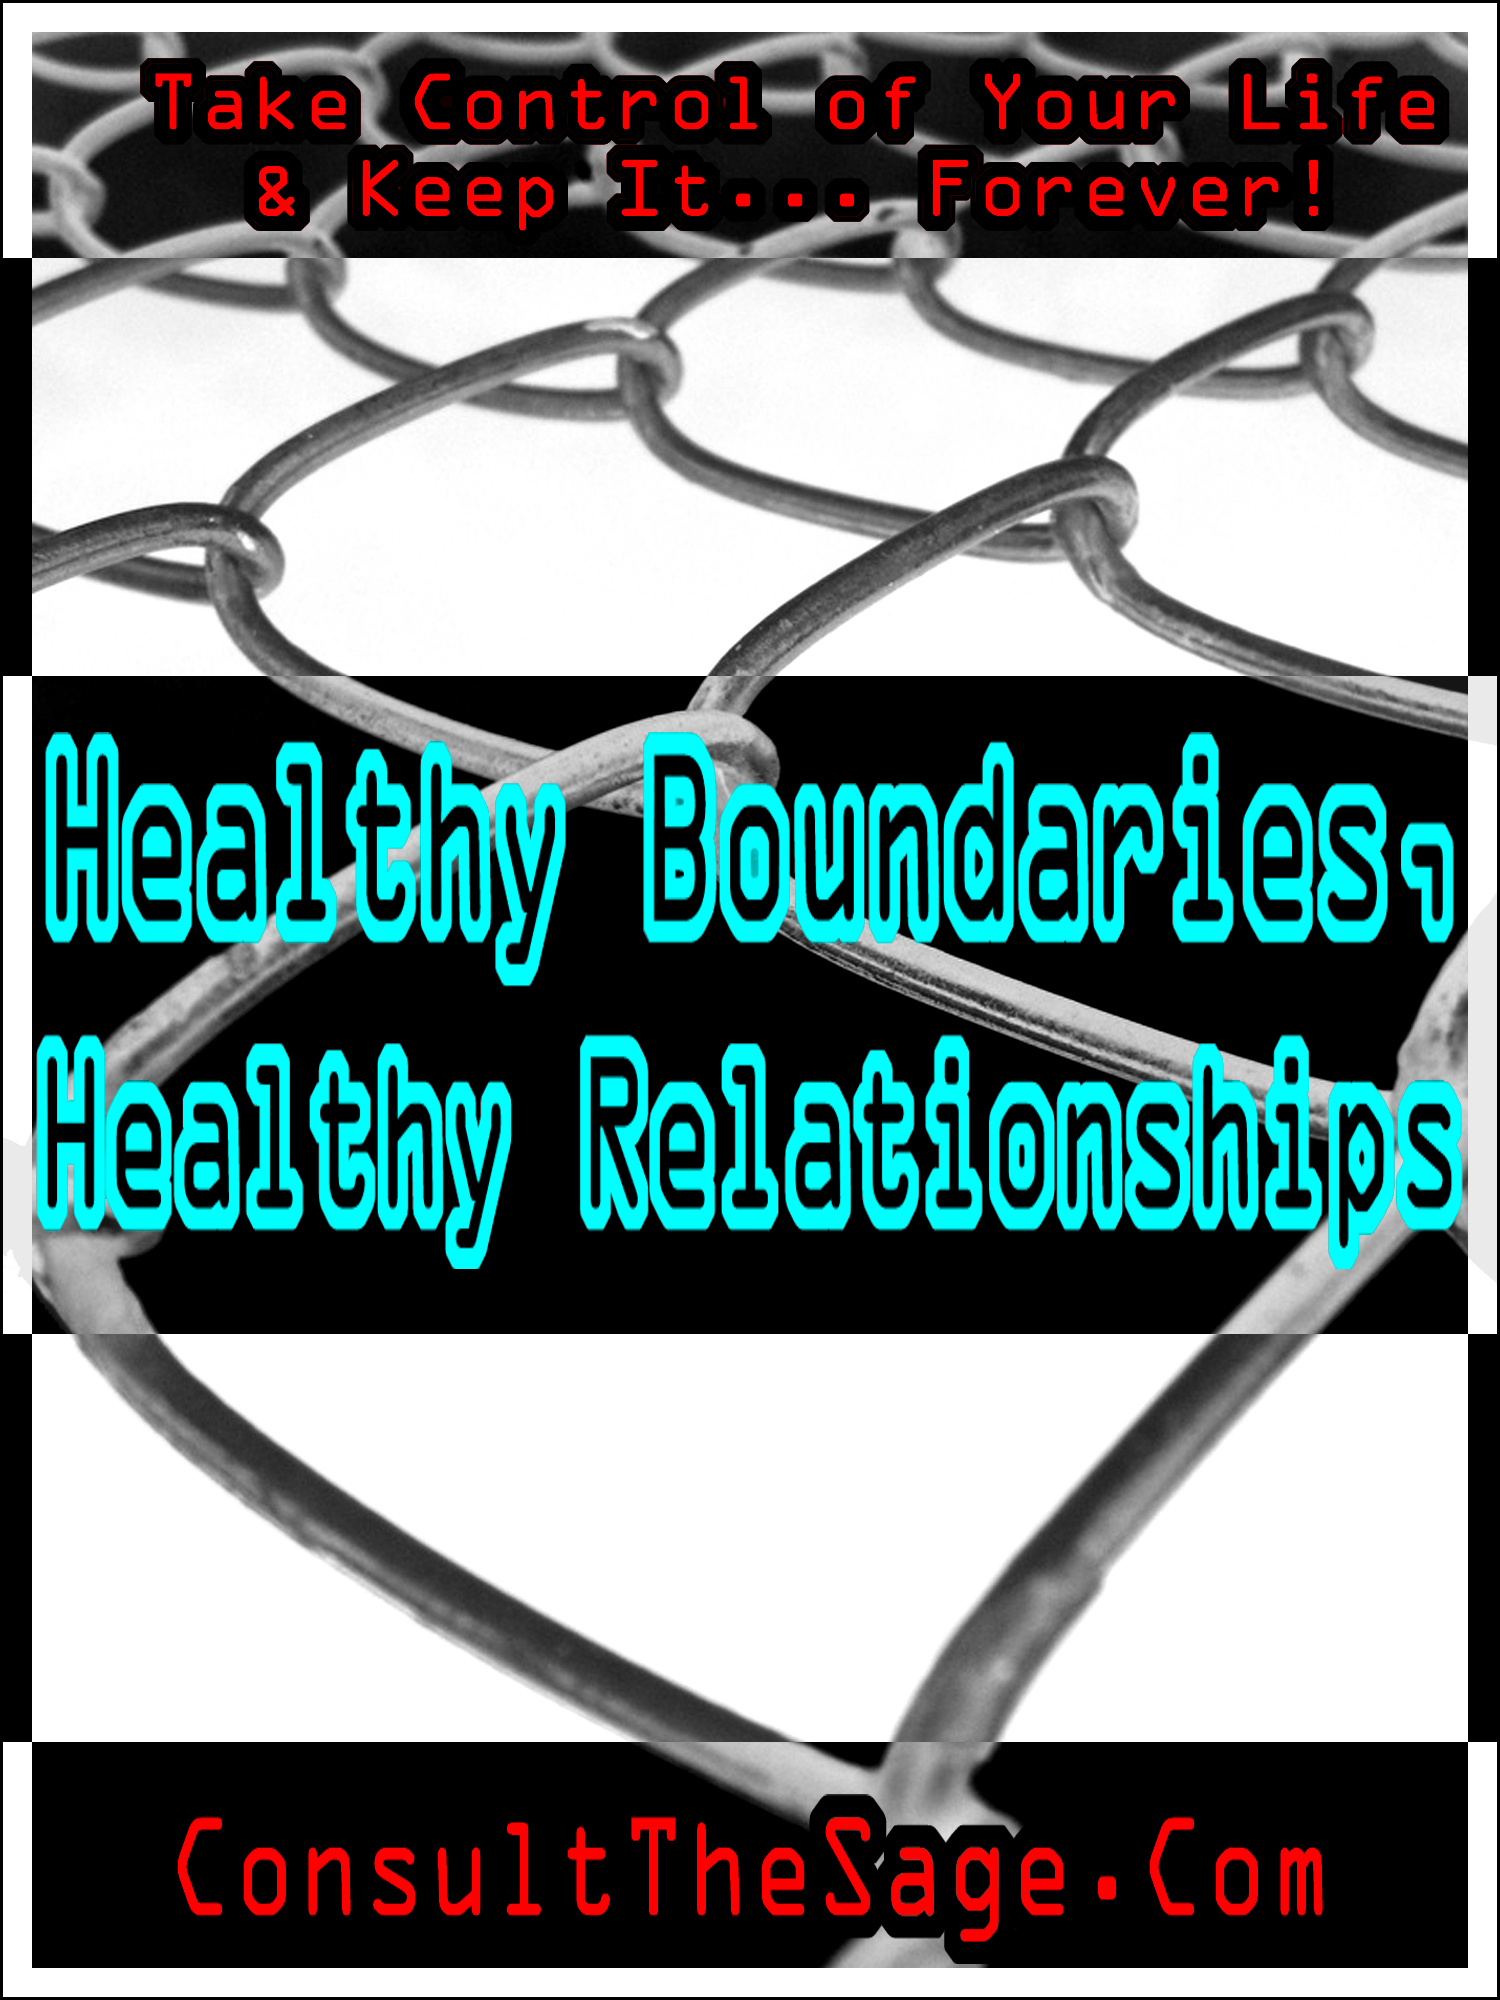 Healthy Boundaries, Healthy Relationships